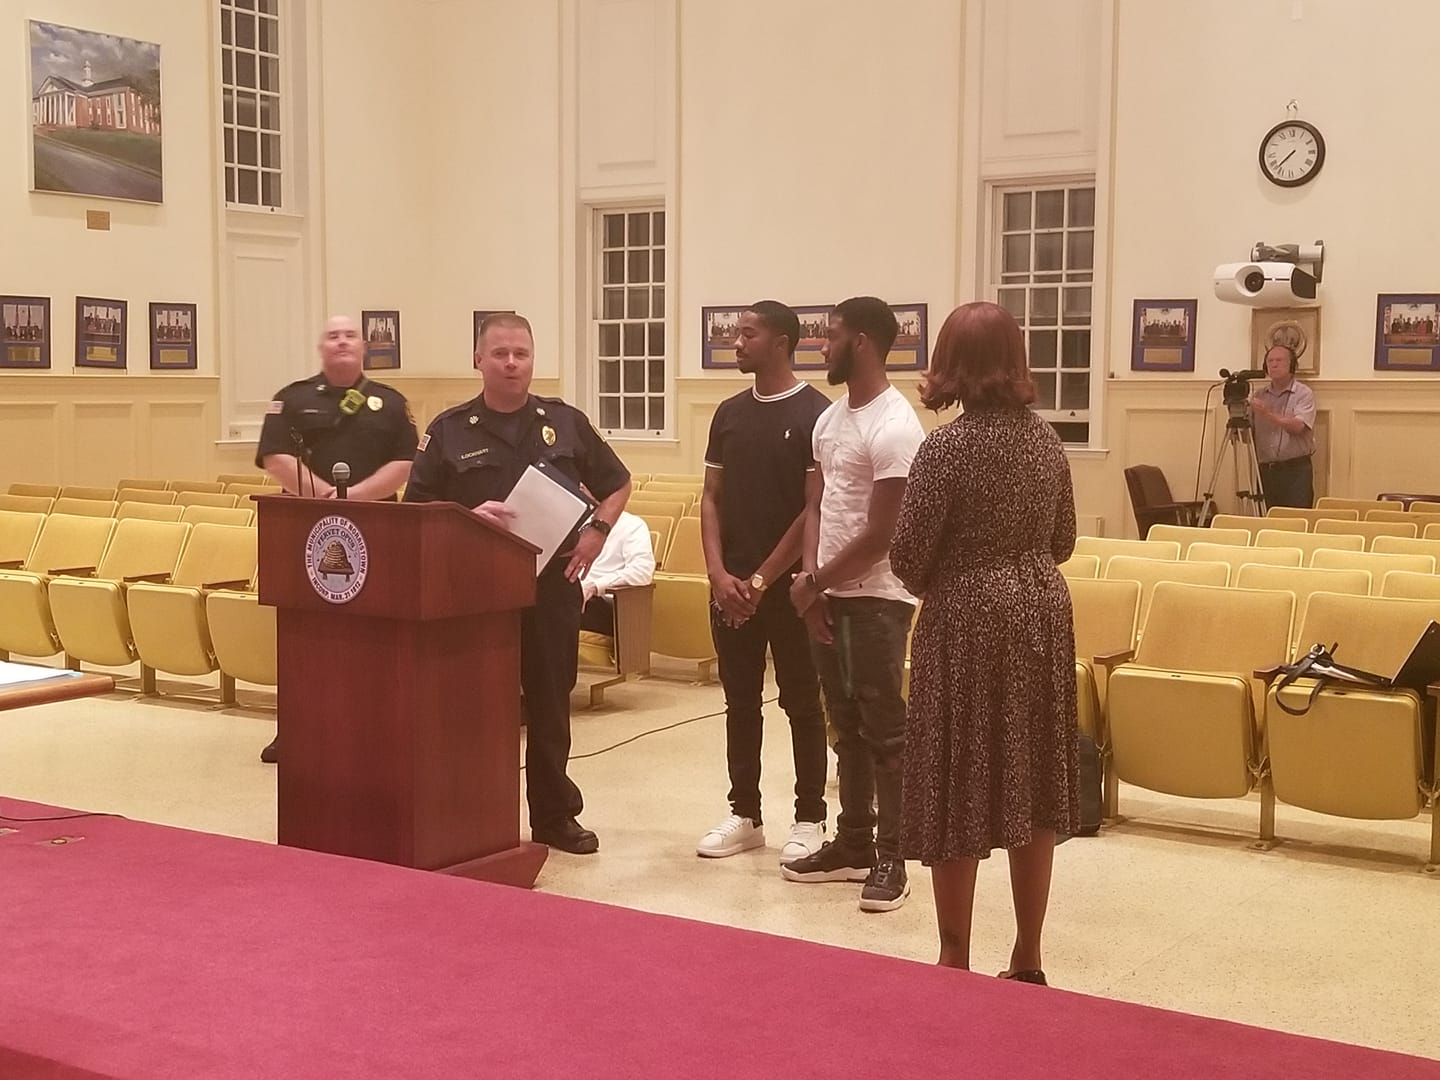 Two young men were honored as heros at council meeting